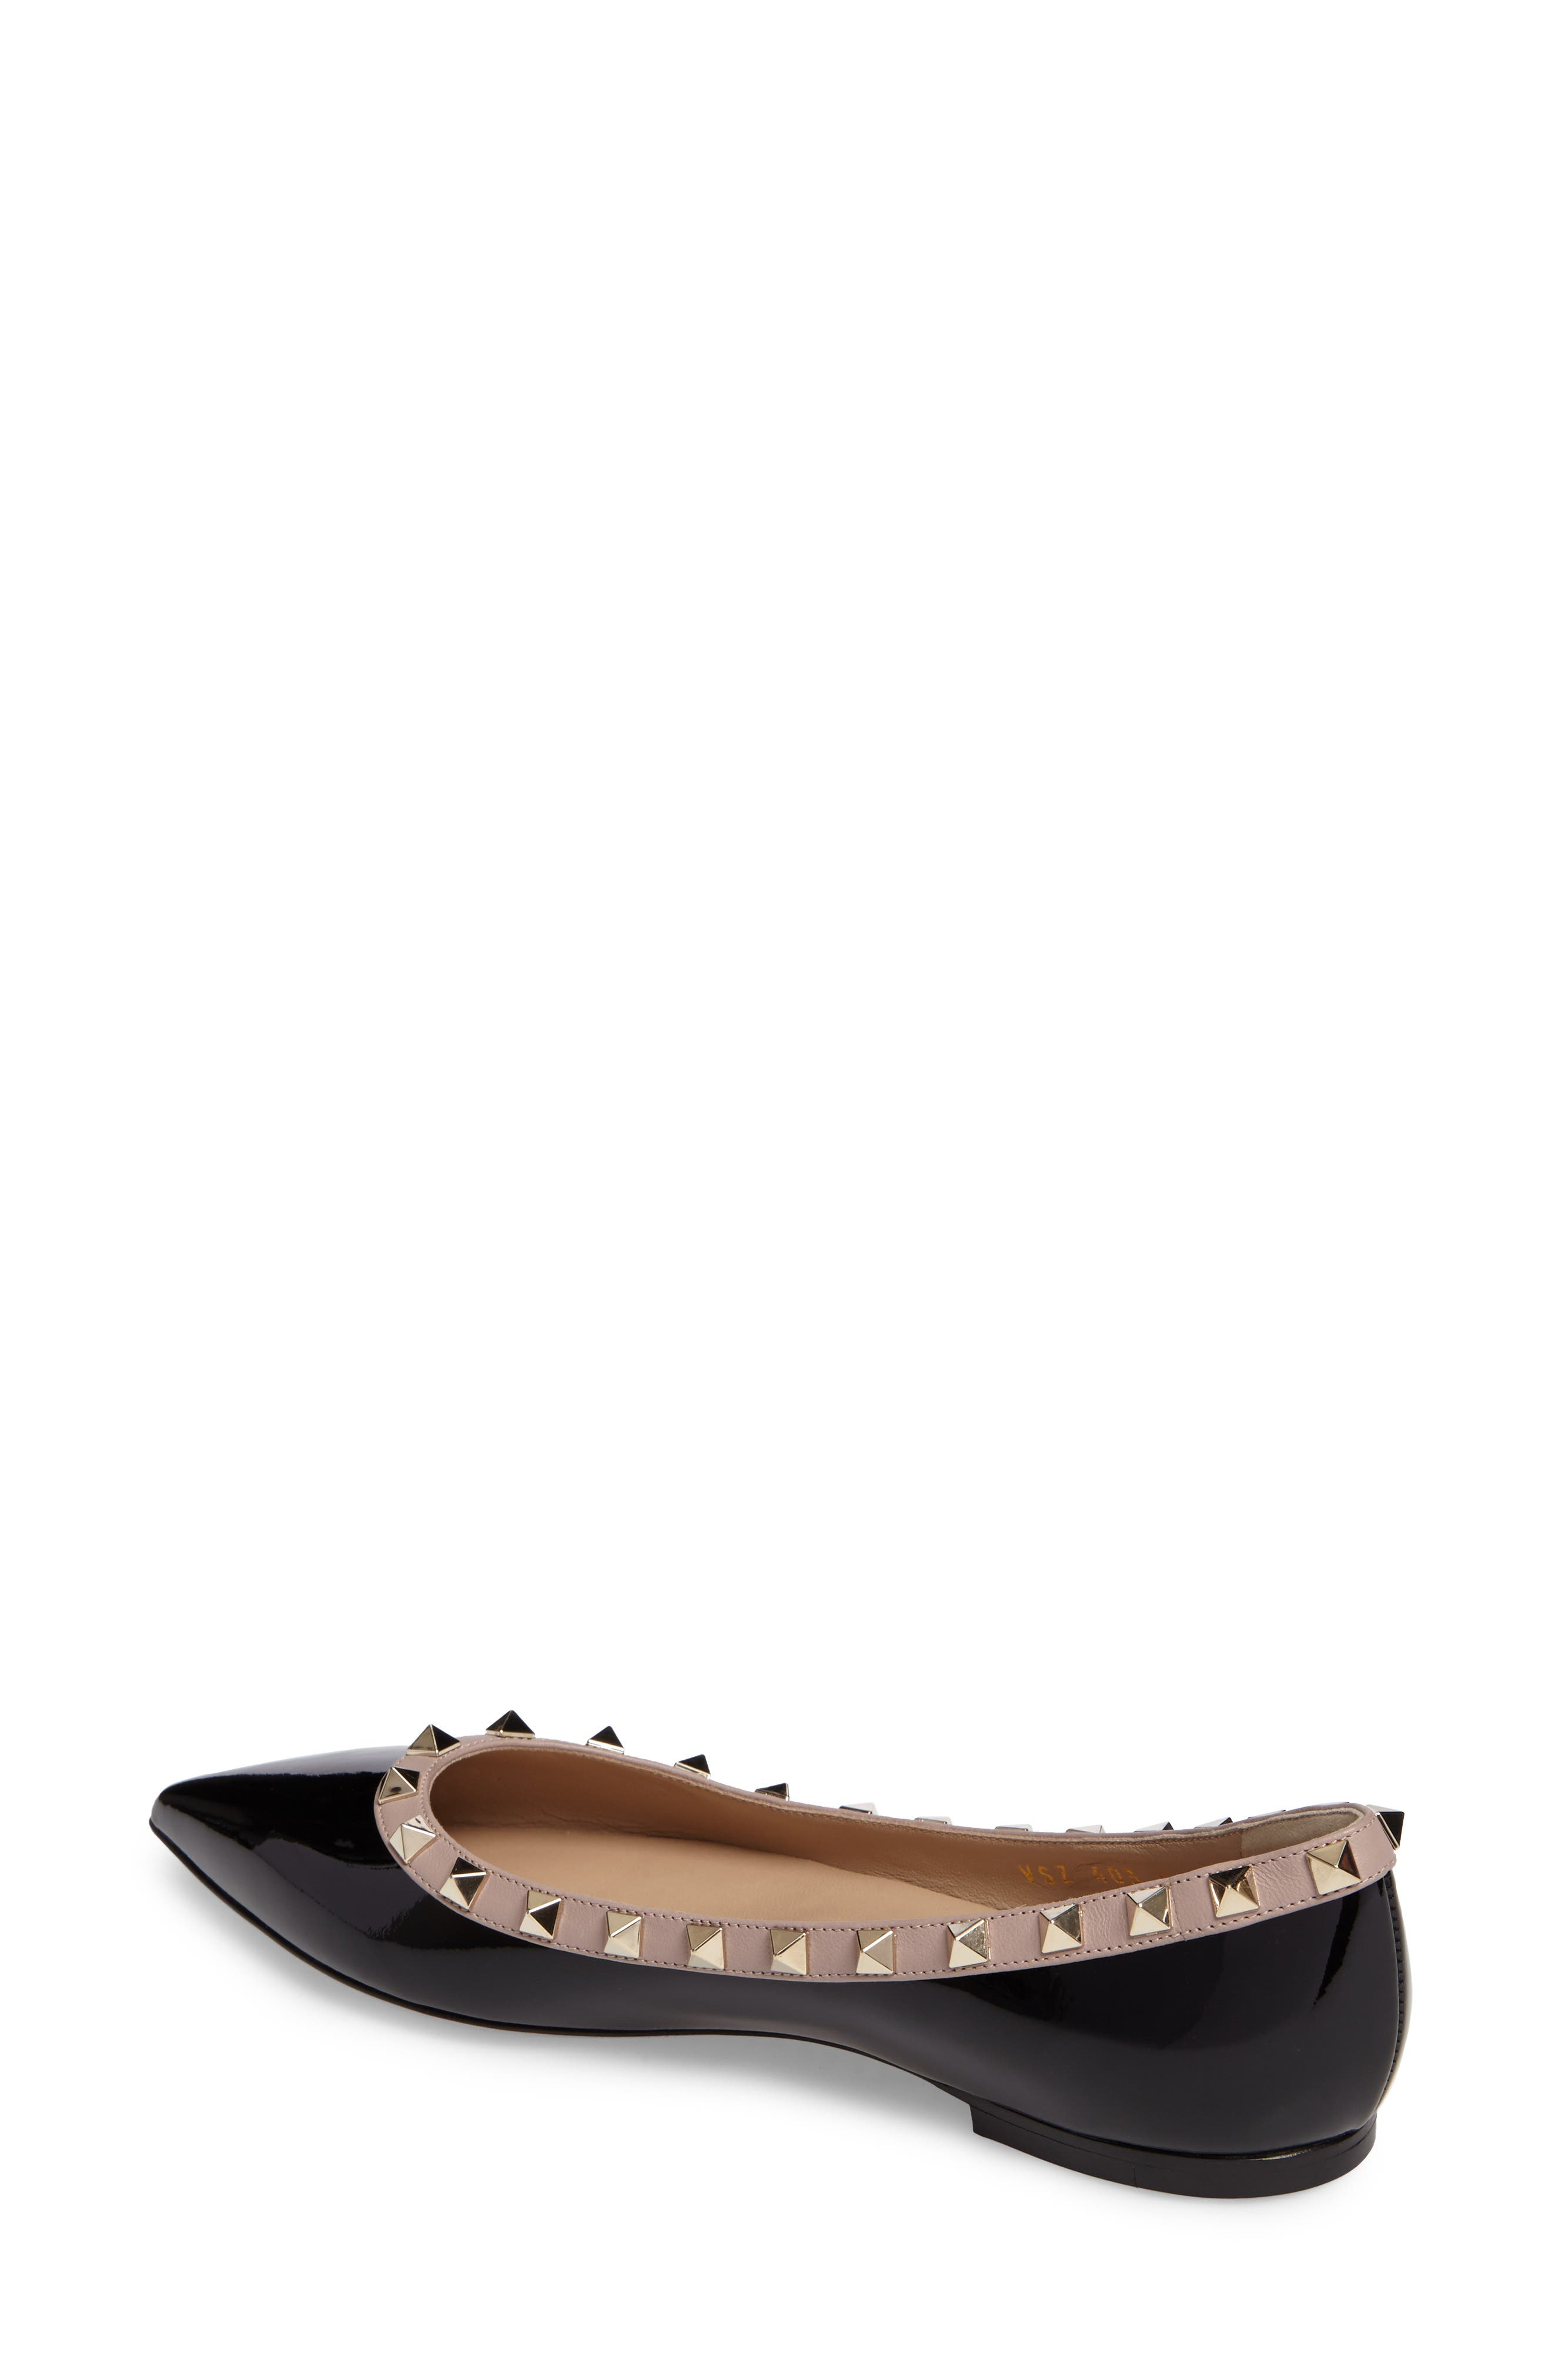 Rockstud Ballerina Flat,                             Alternate thumbnail 2, color,                             BLACK/ BLUSH